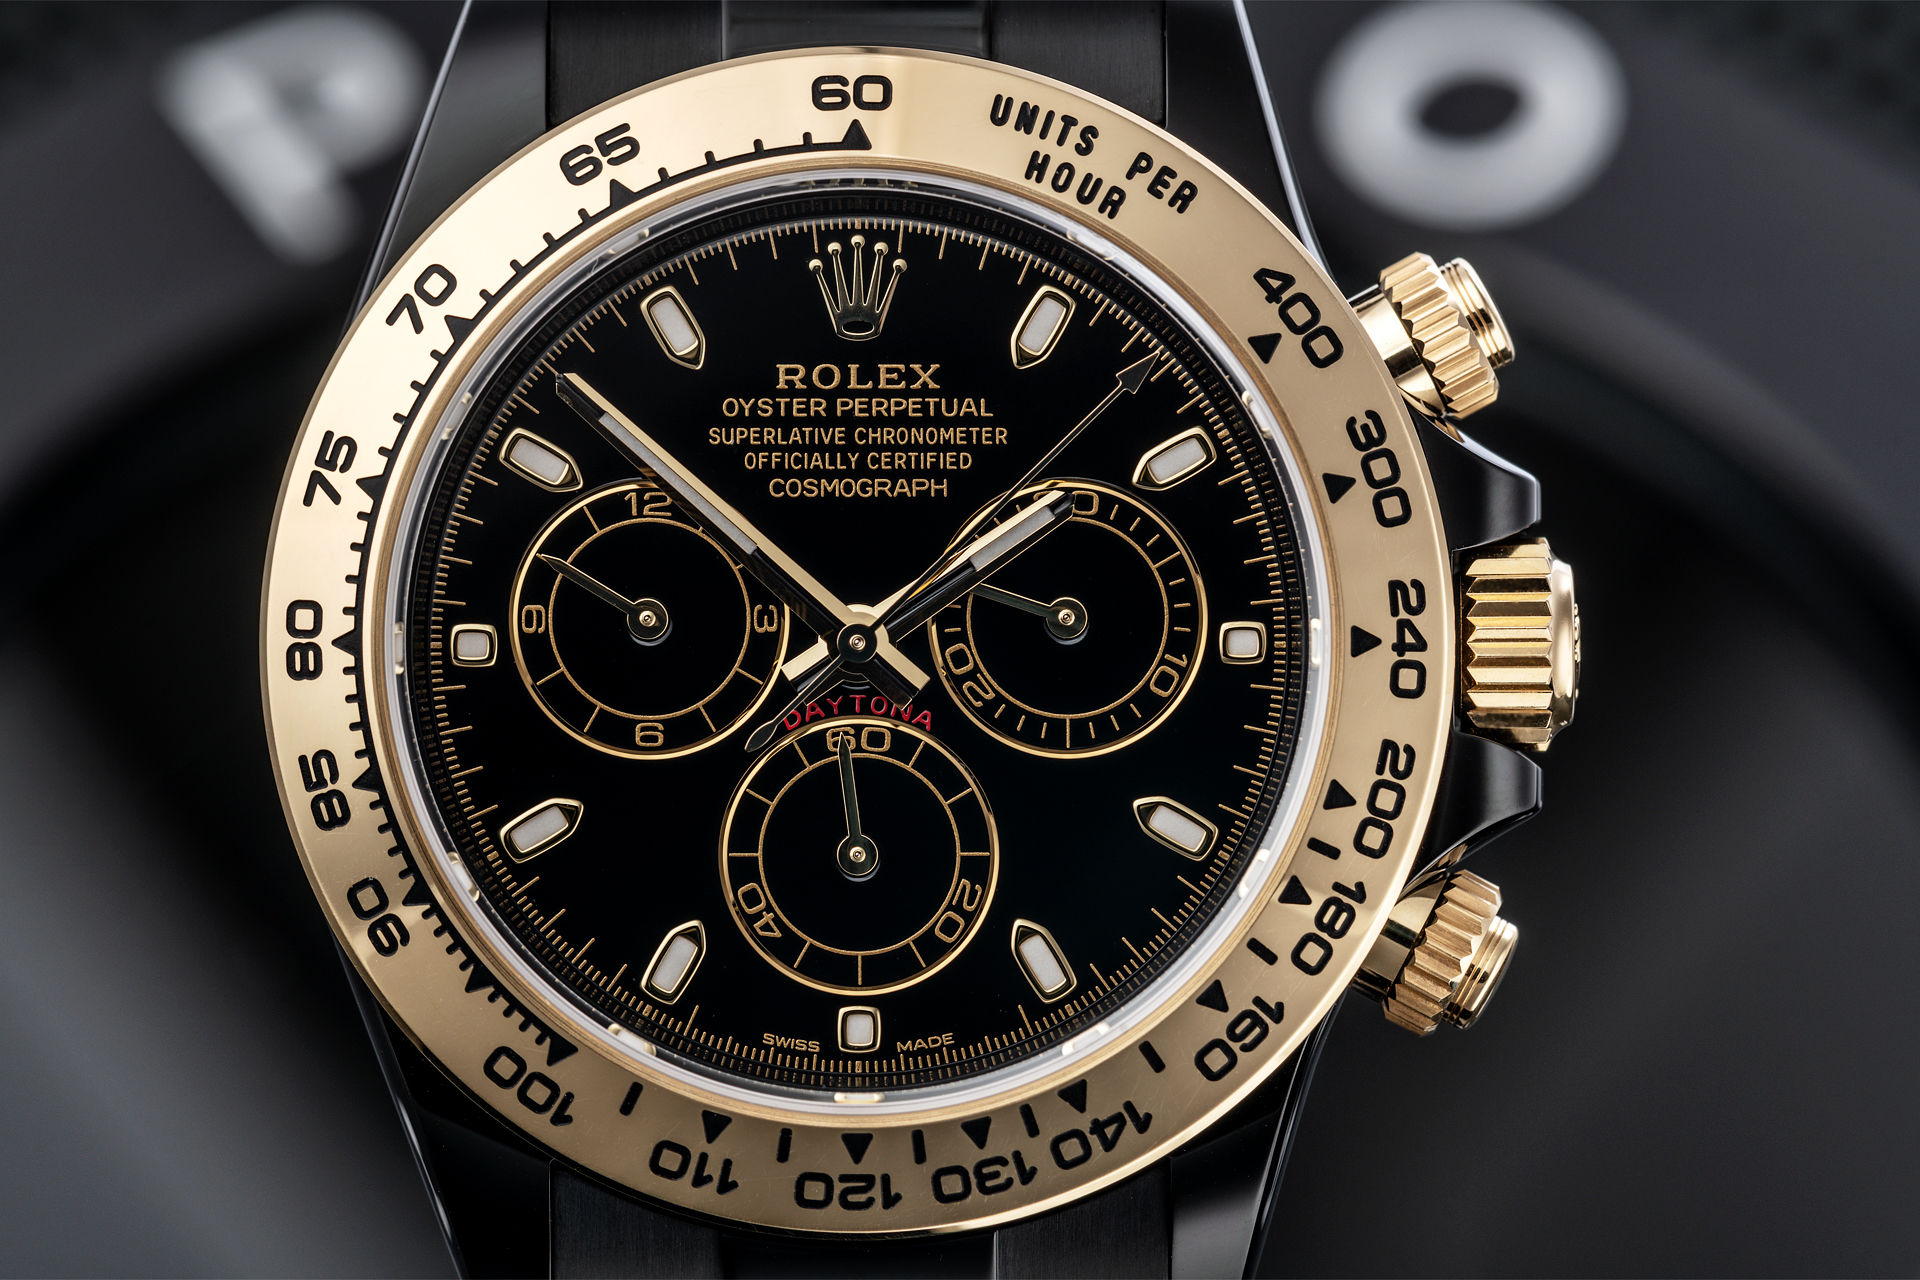 ref 116503 | One of 100 | Pro Hunter Safari Daytona